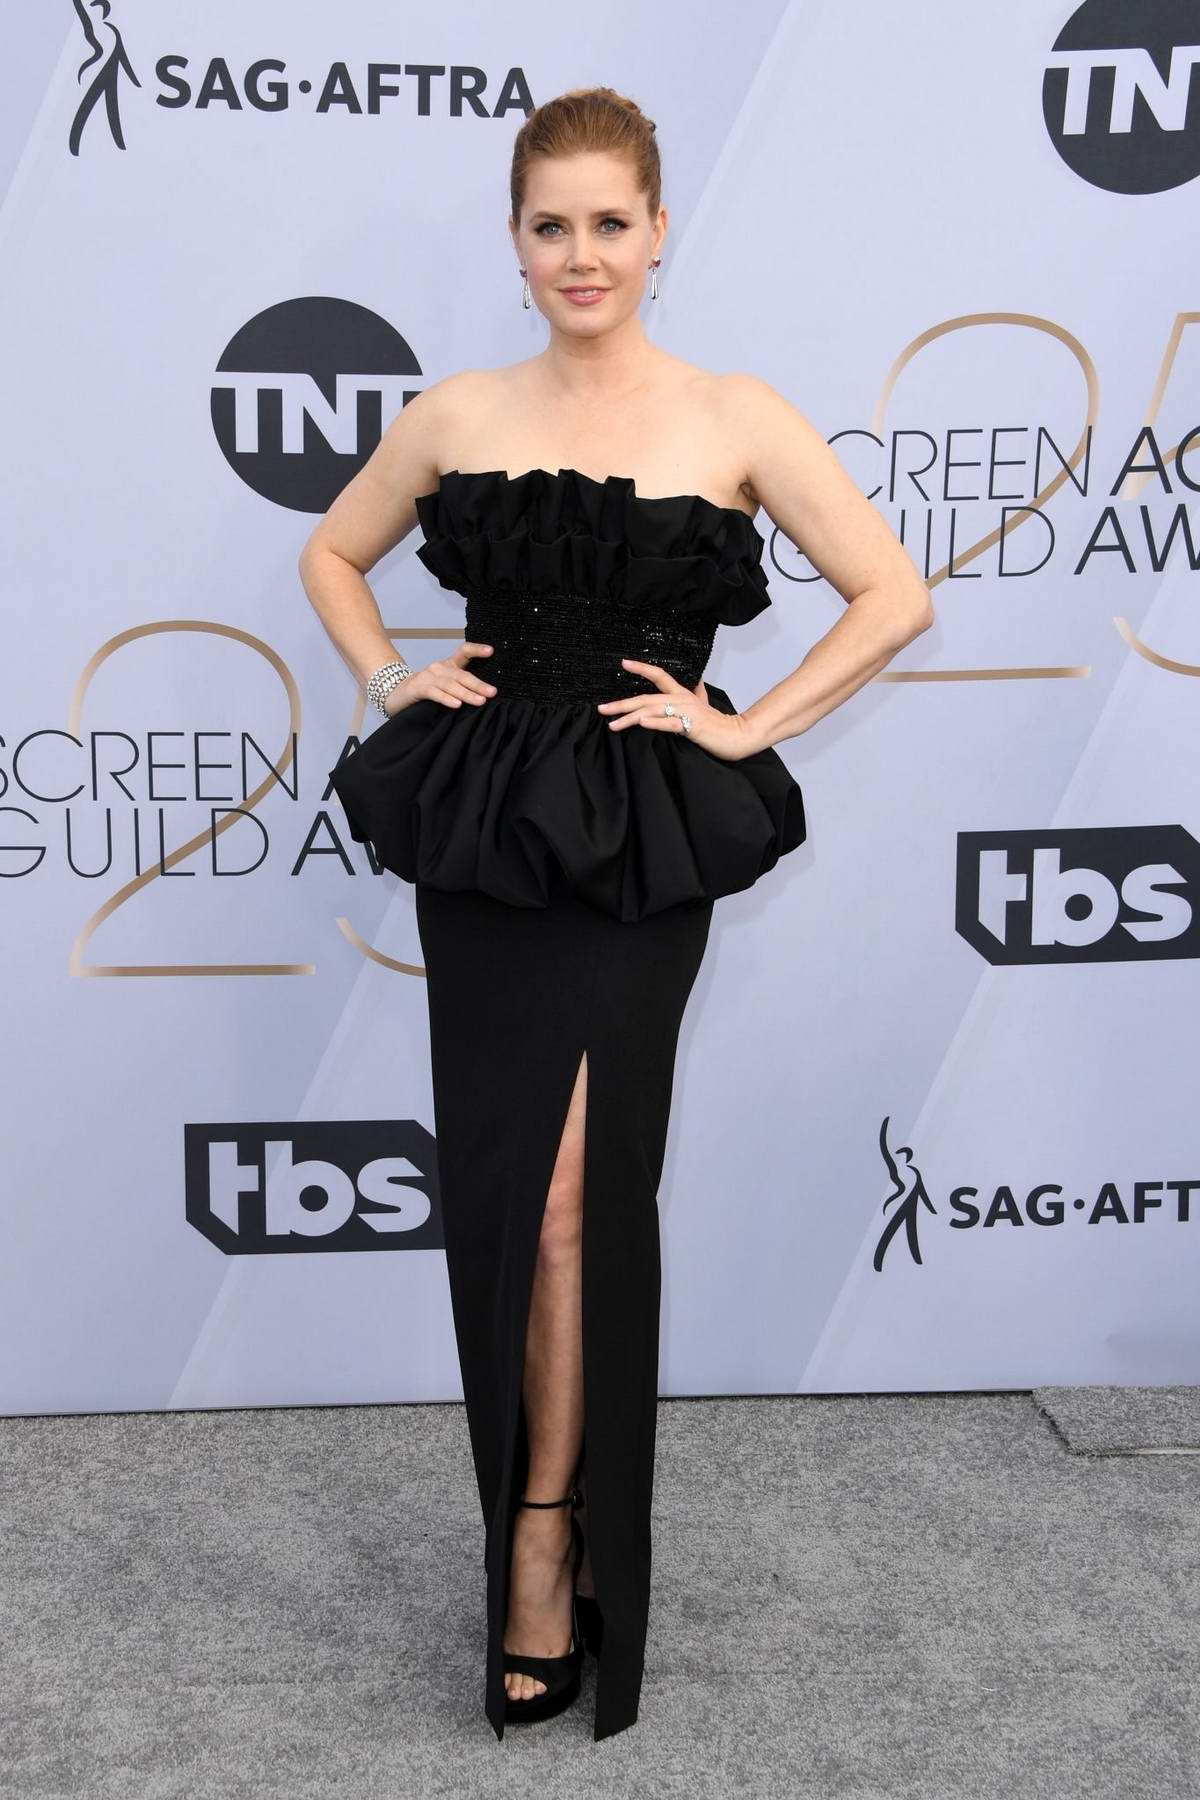 Amy Adams attends the 25th Annual Screen Actors Guild Awards (SAG 2019) at the Shrine Auditorium in Los Angeles